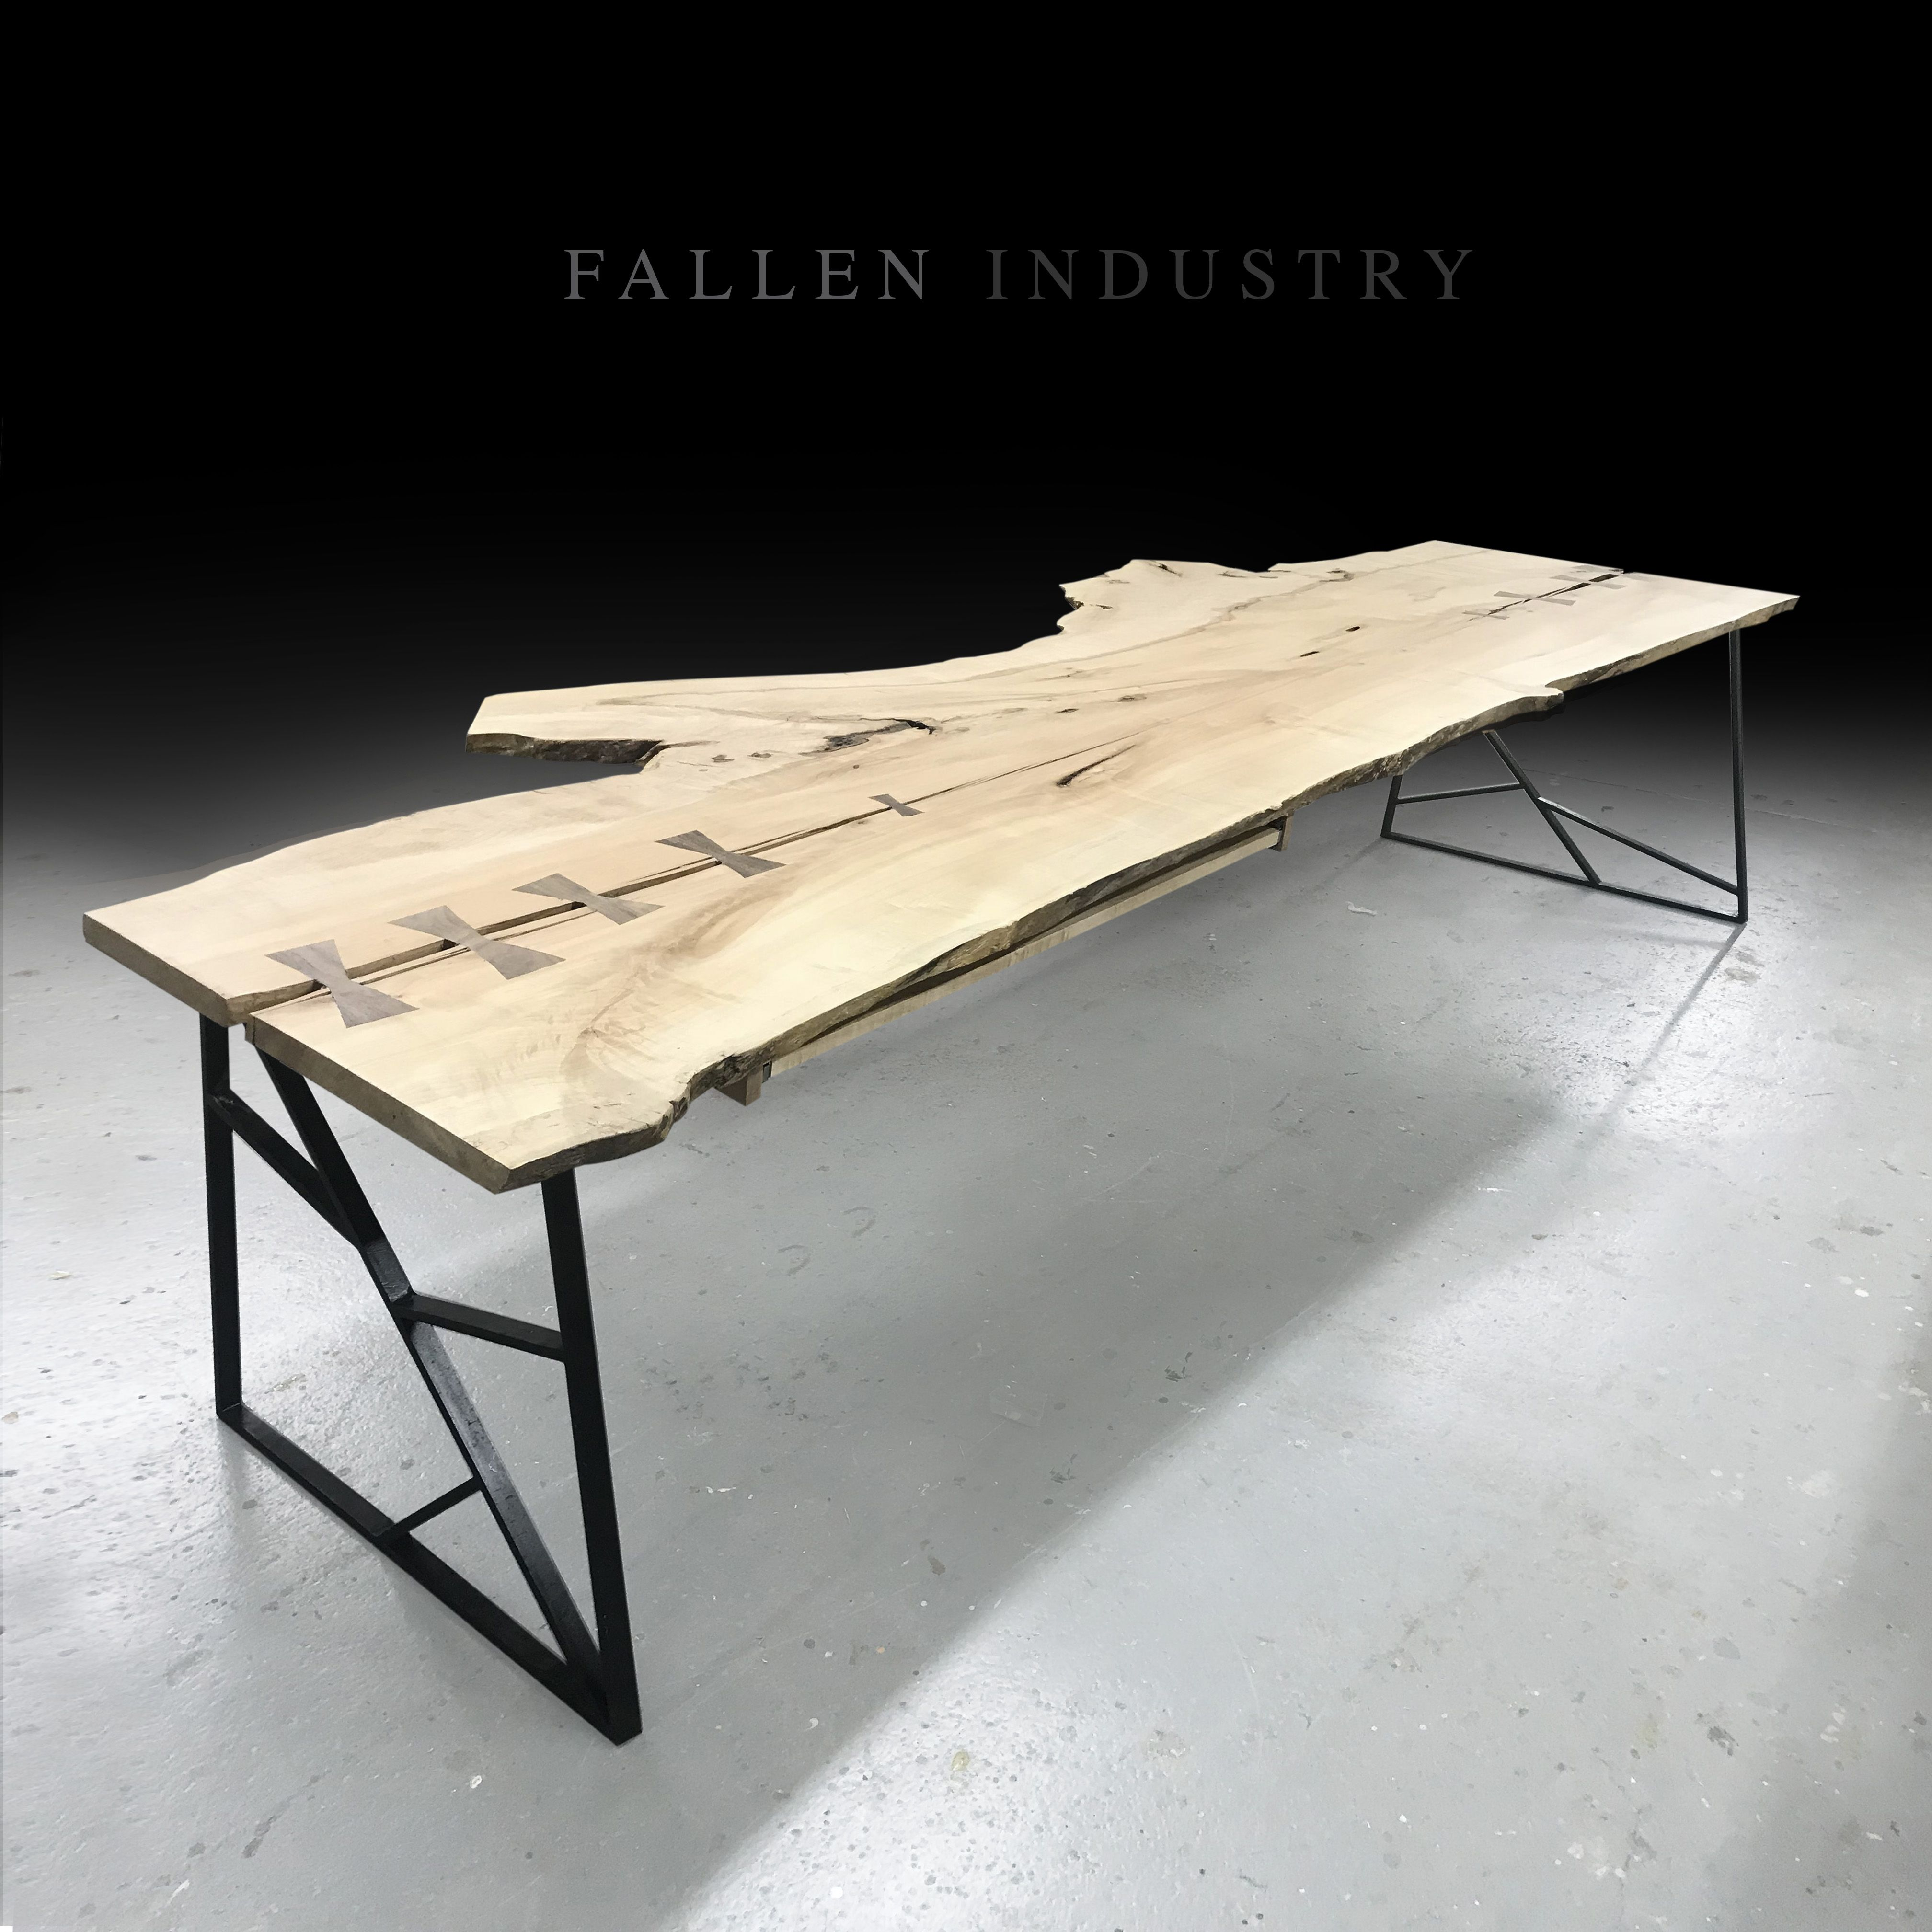 Natural Wood Slab Furniture, Live Edge Tables, Desks And Live Edge Furniture  Wood Slab Tables Made From Fallen Trees And Reclaimed Wood In Brooklyn NYC.